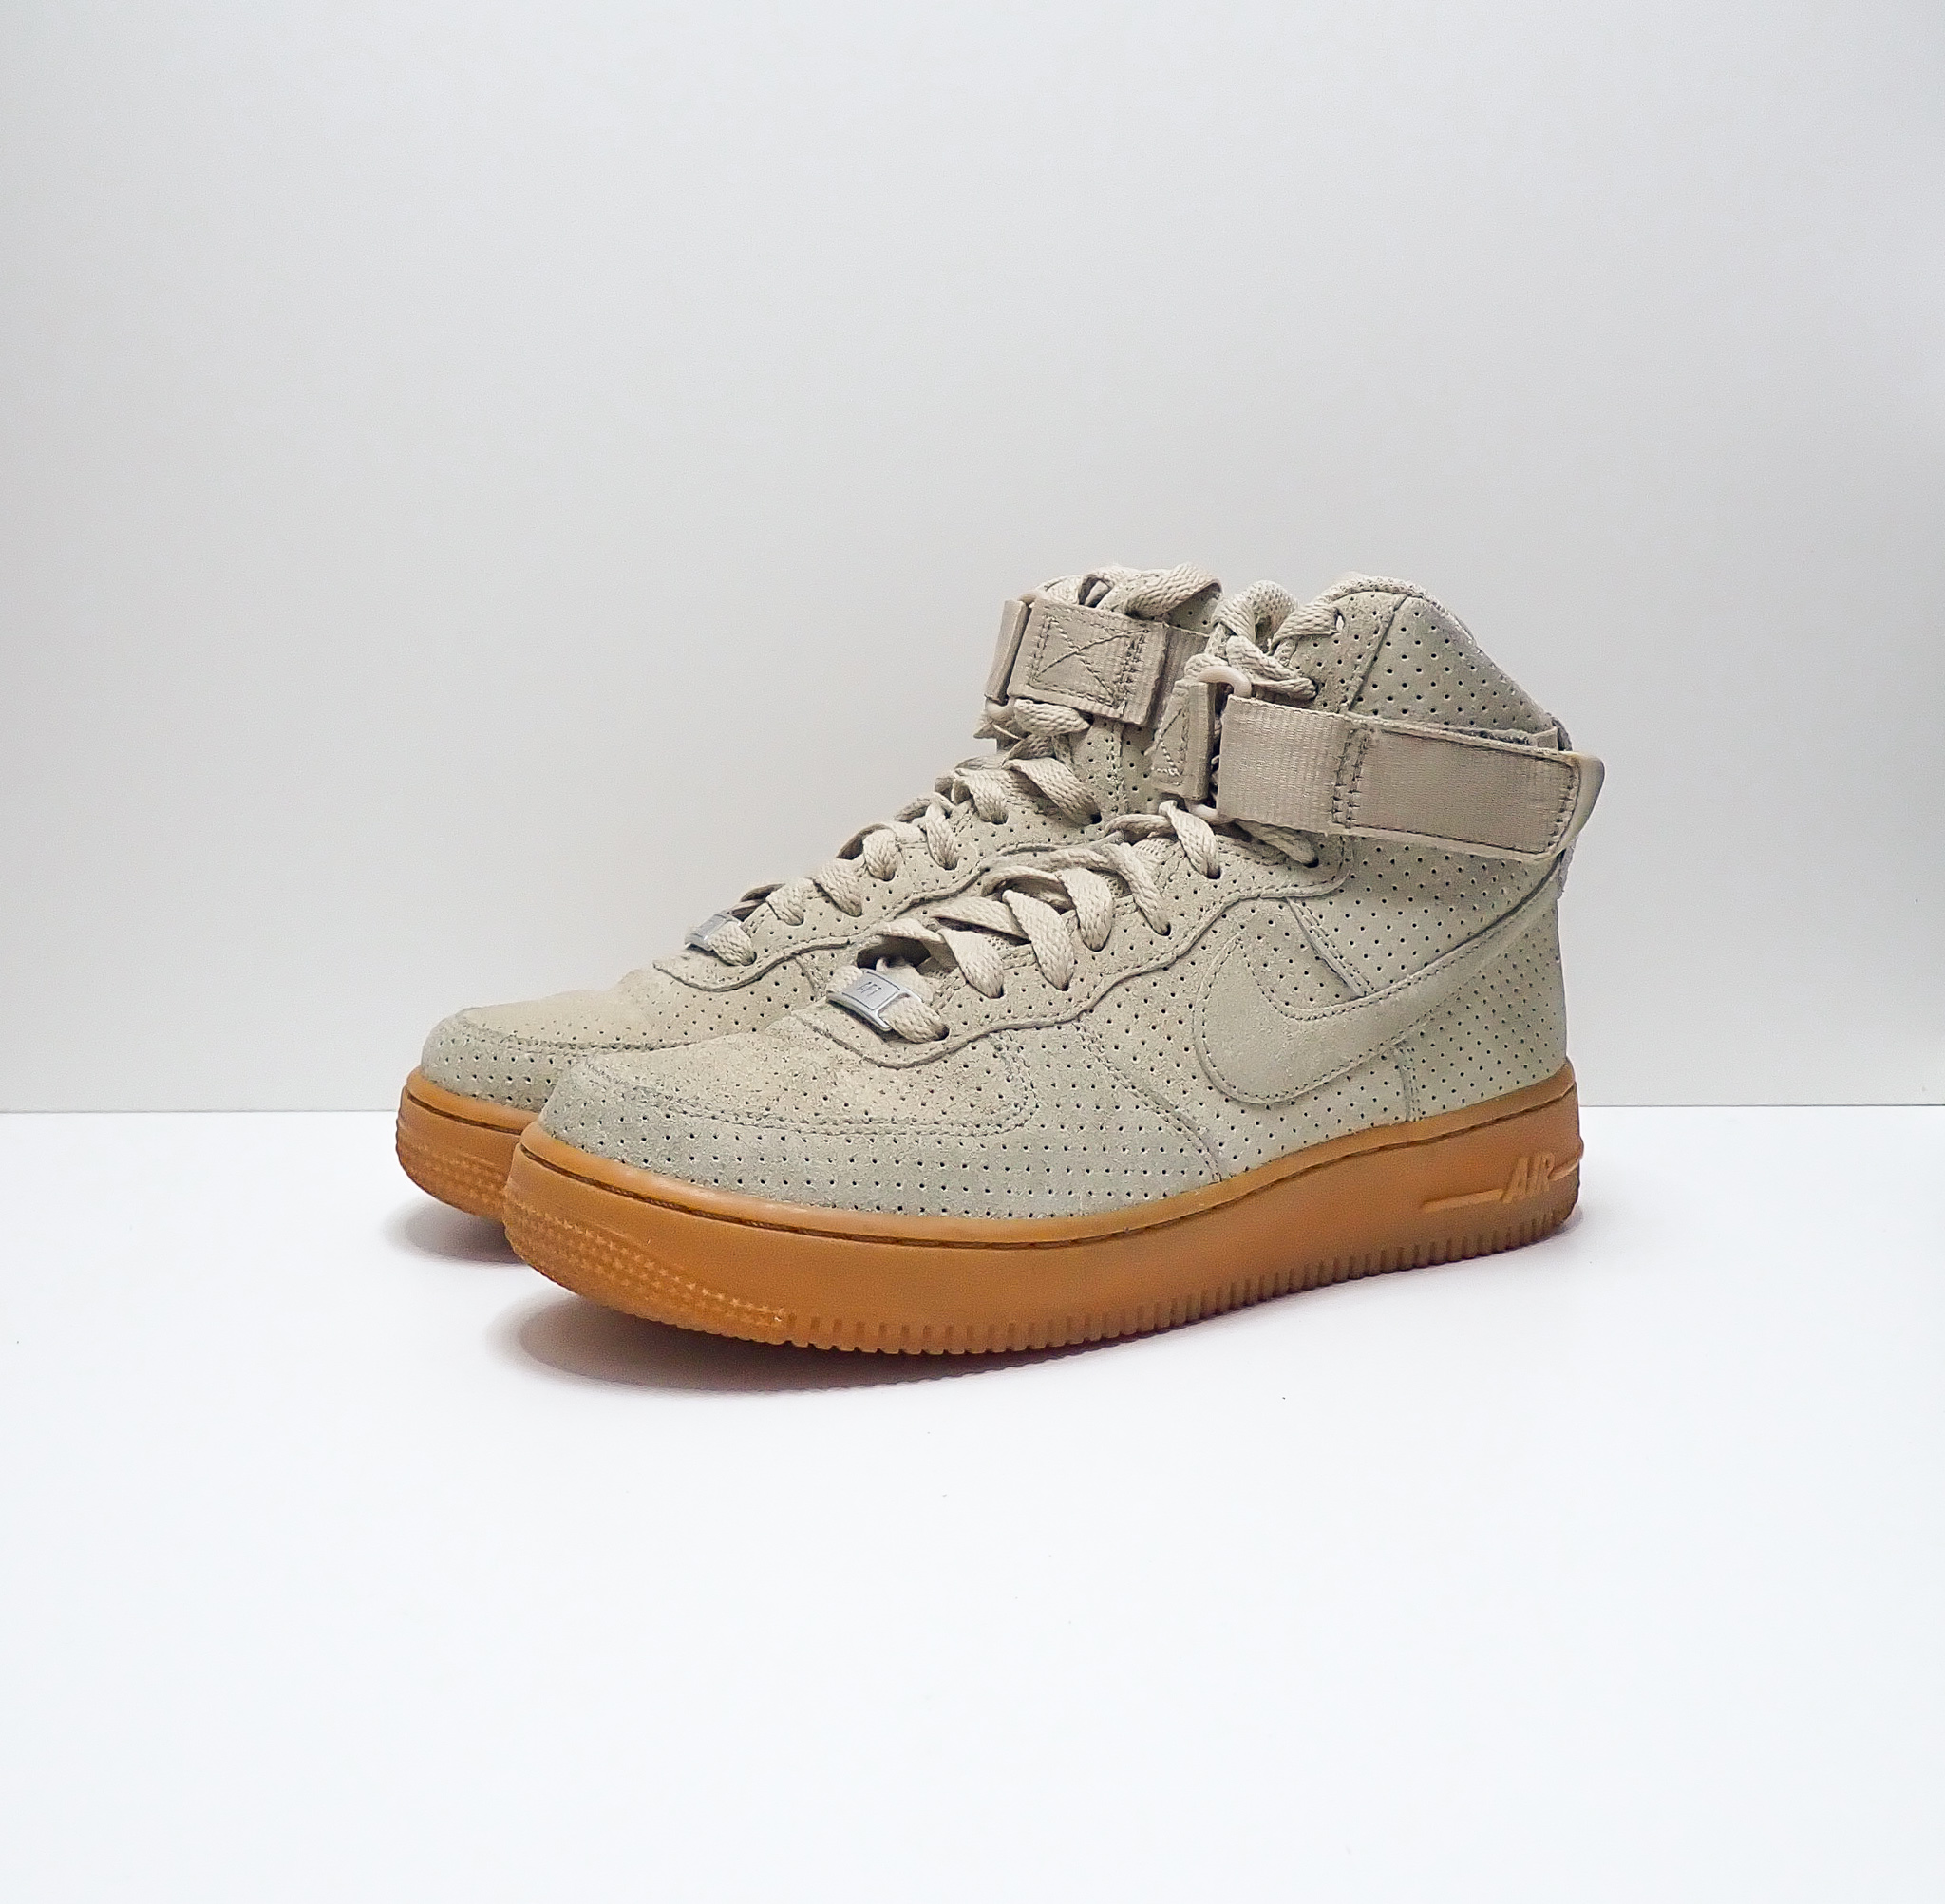 Nike Wmns Air Force 1 High Suede String